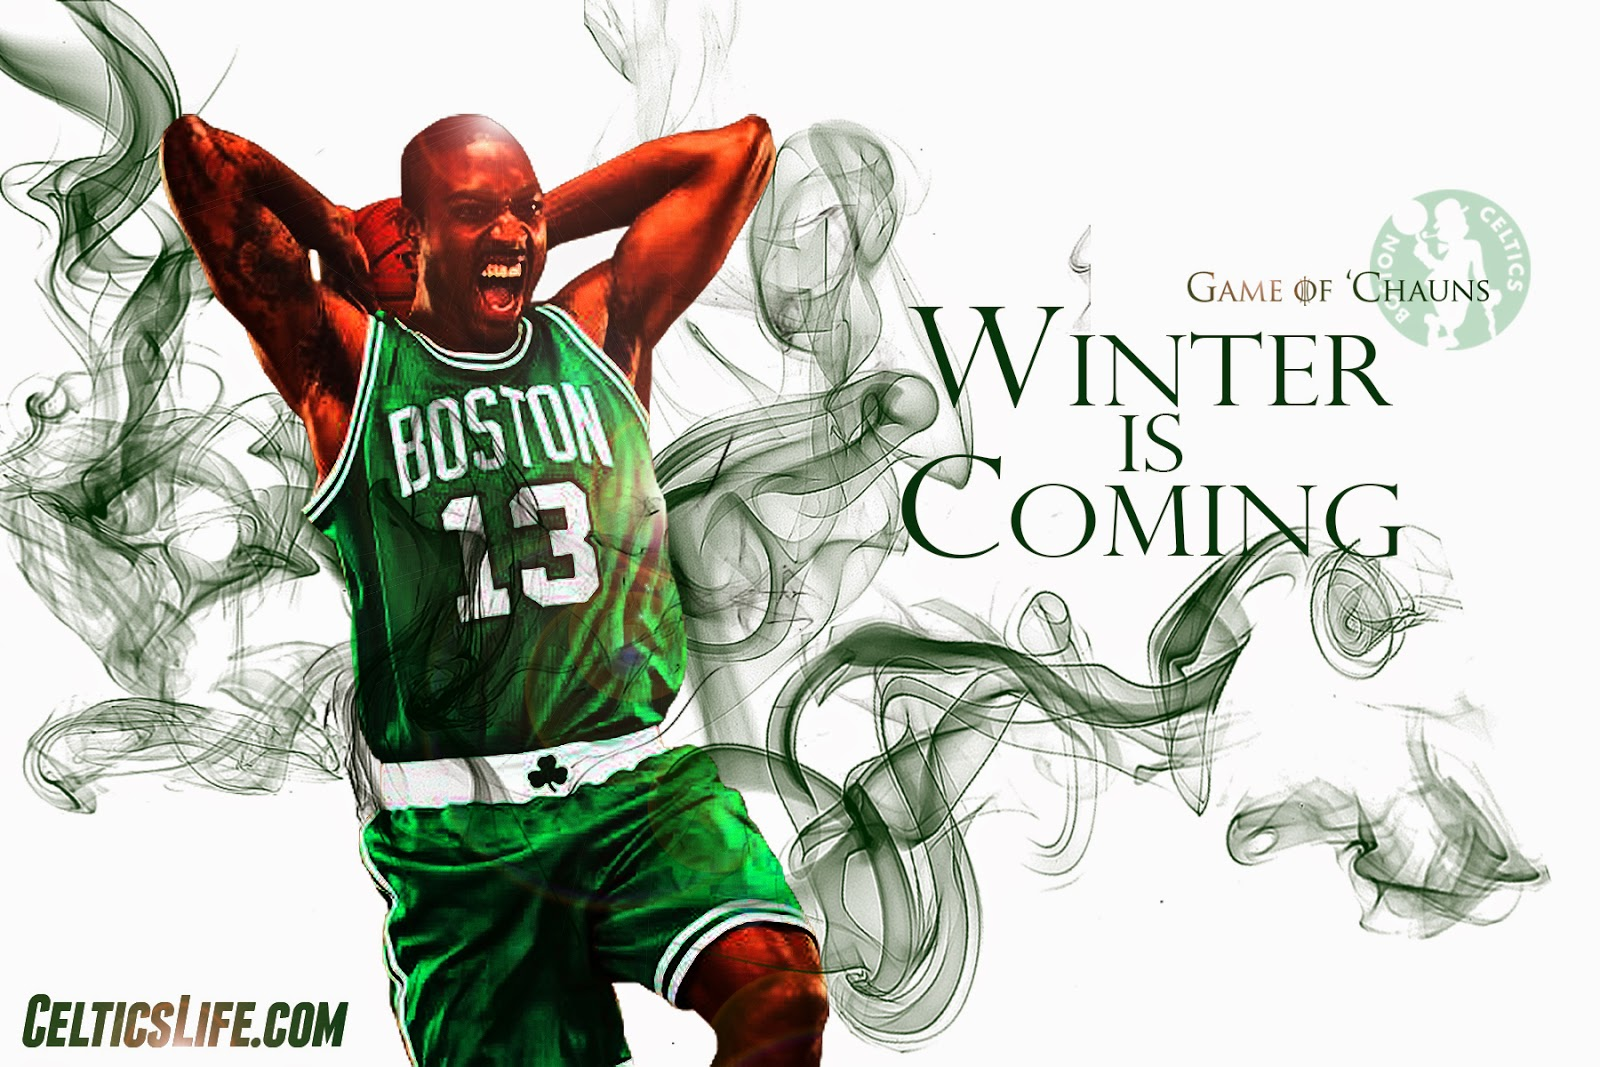 wallpaper wednesday: game of 'chauns the rookies | celticslife